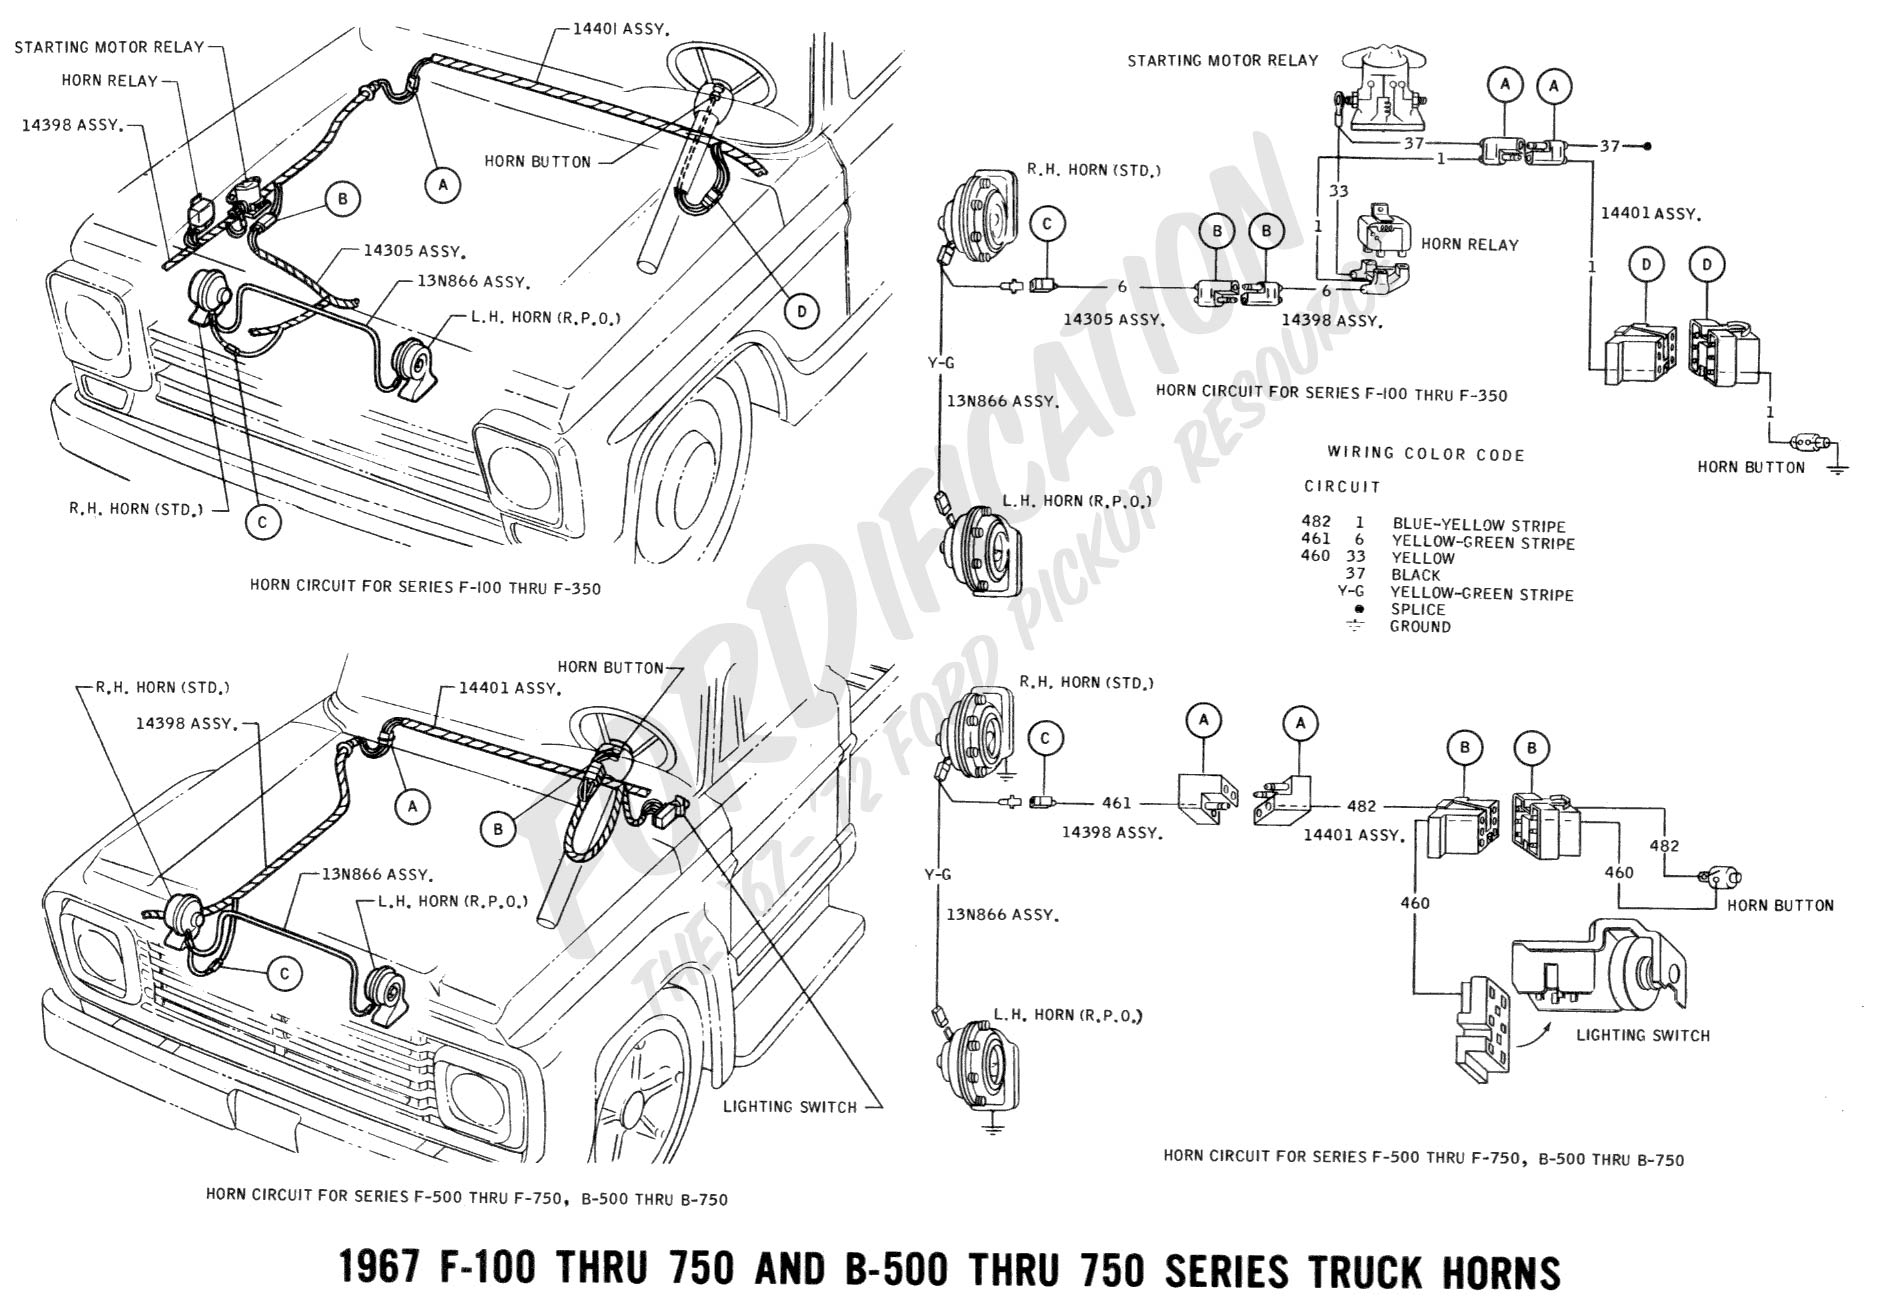 Vw Jetta Wiring Diagram Ac Get Free Image About Wiring Diagram